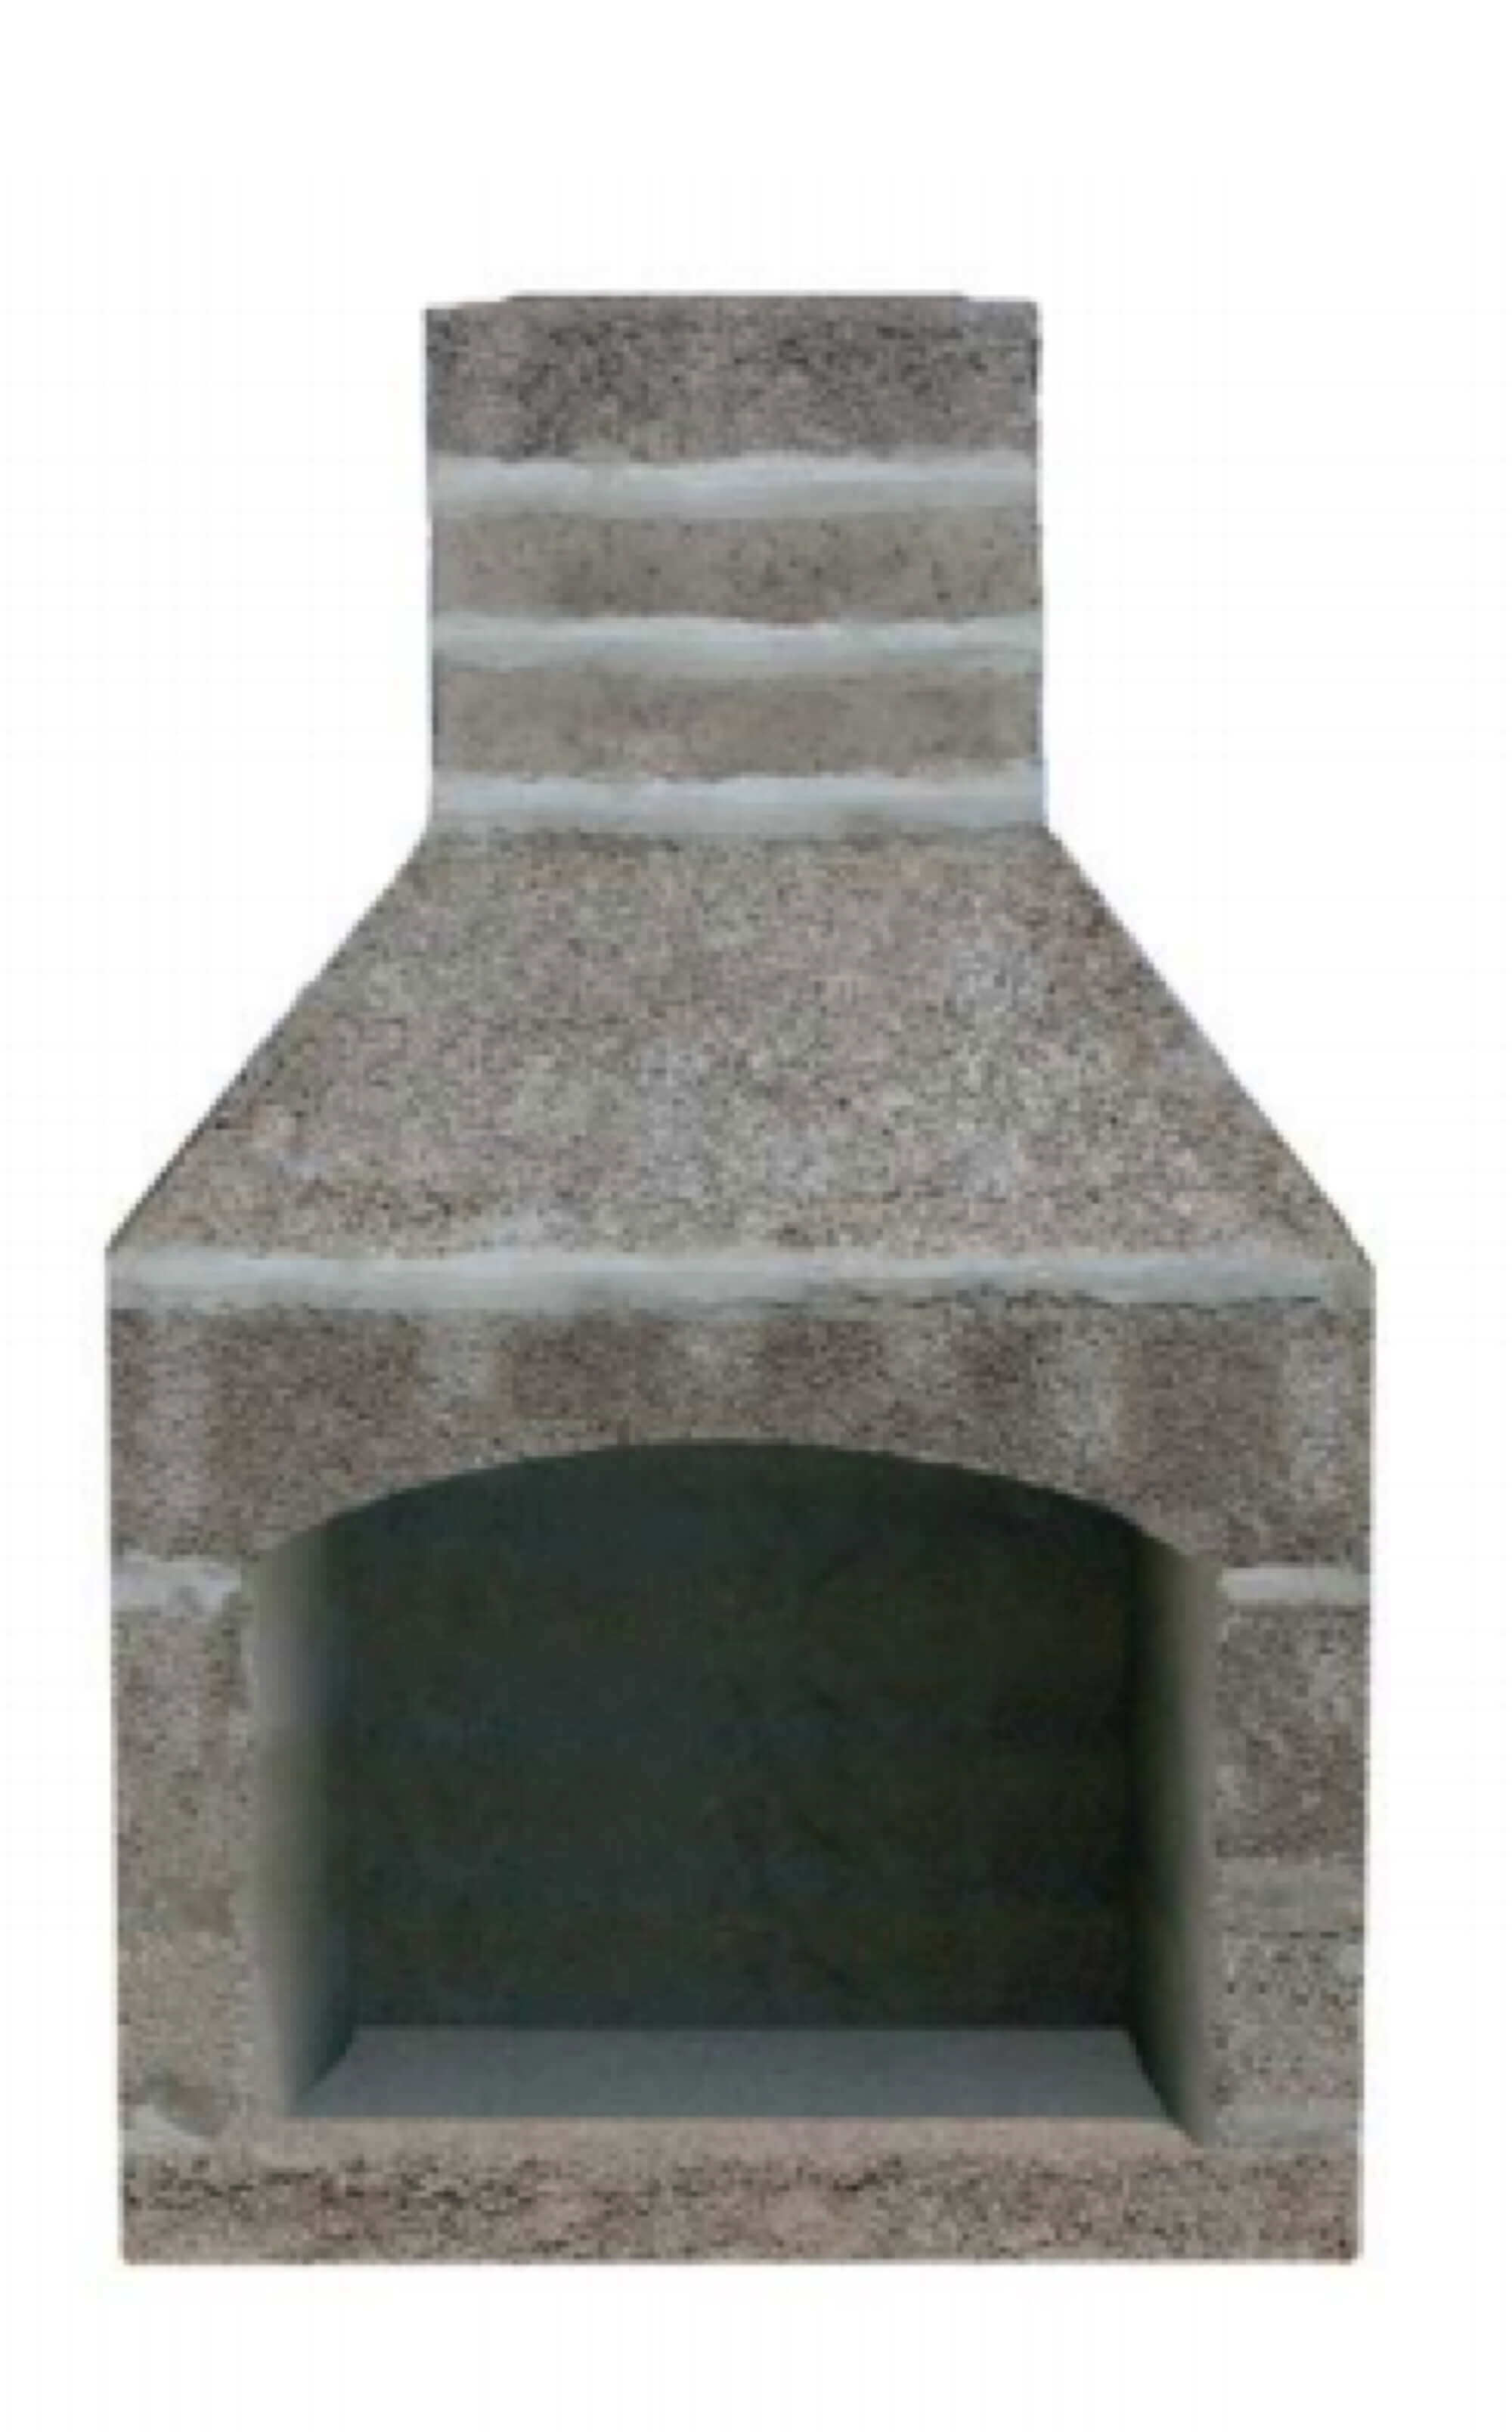 Unfinished-Outdoor-fire-place-contractor-assembled-1